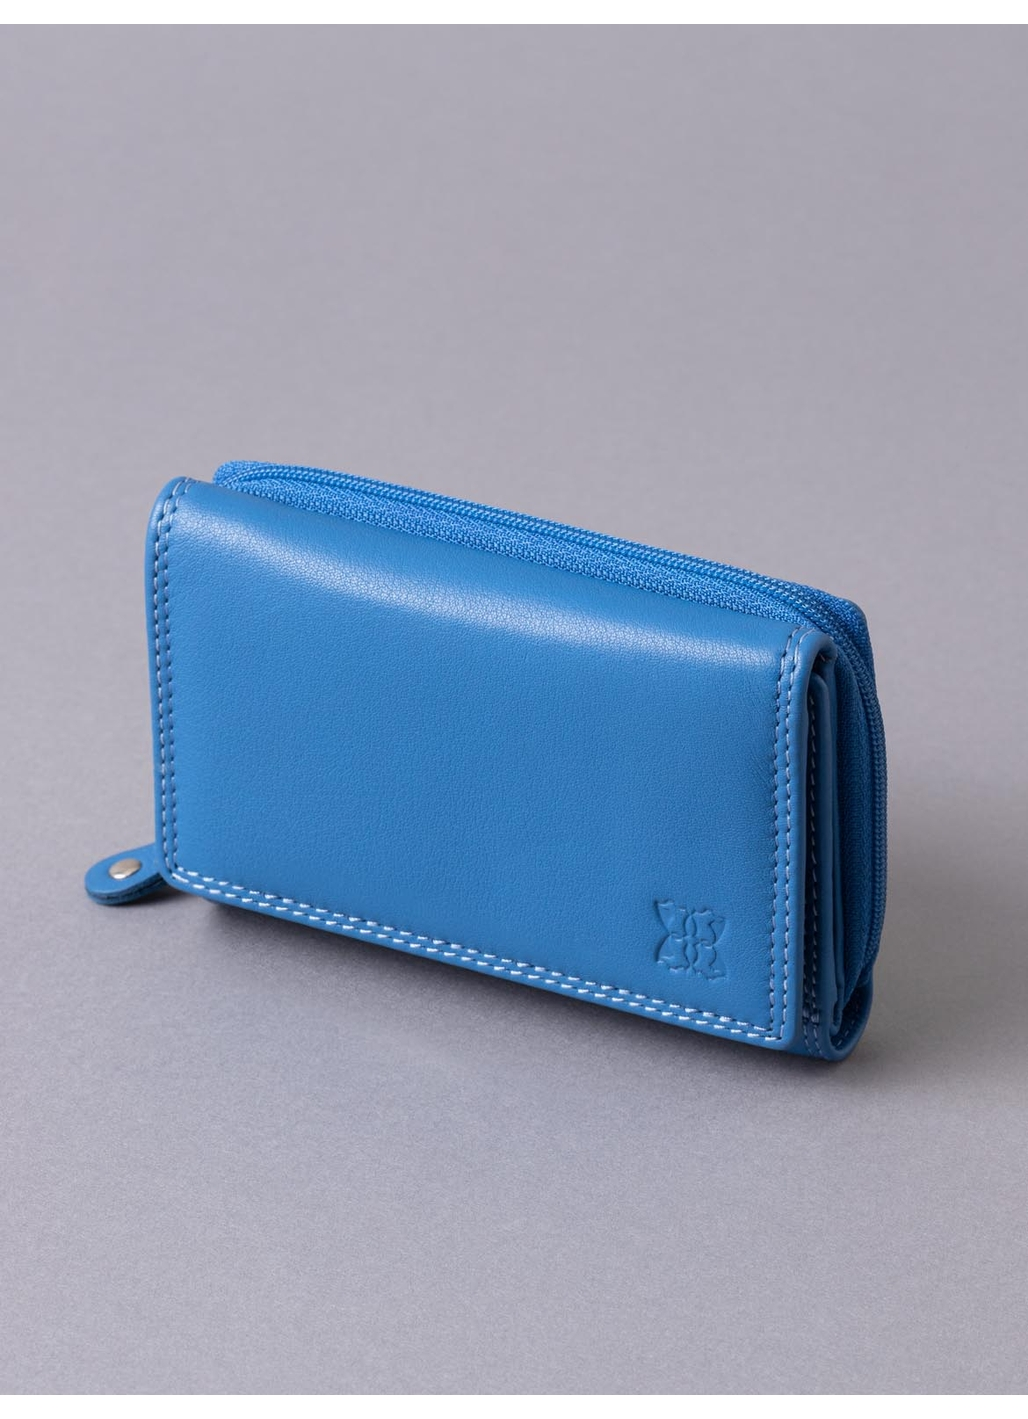 12.5cm Leather Purse in Blue